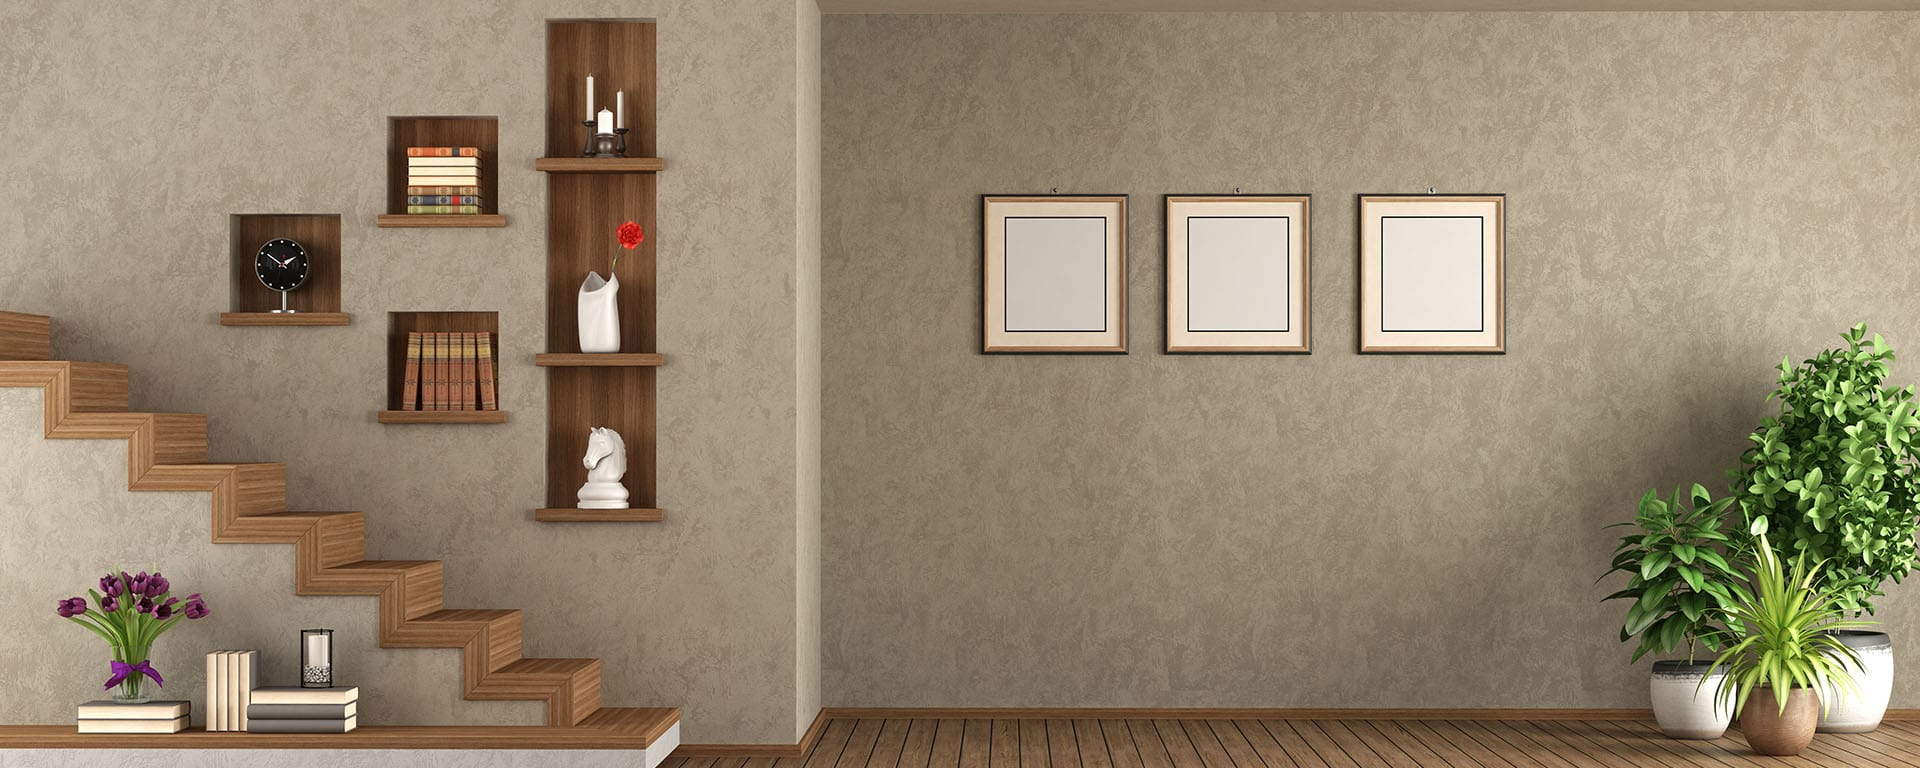 Empty living room with staircase and wooden niche on wall - 3d rendering